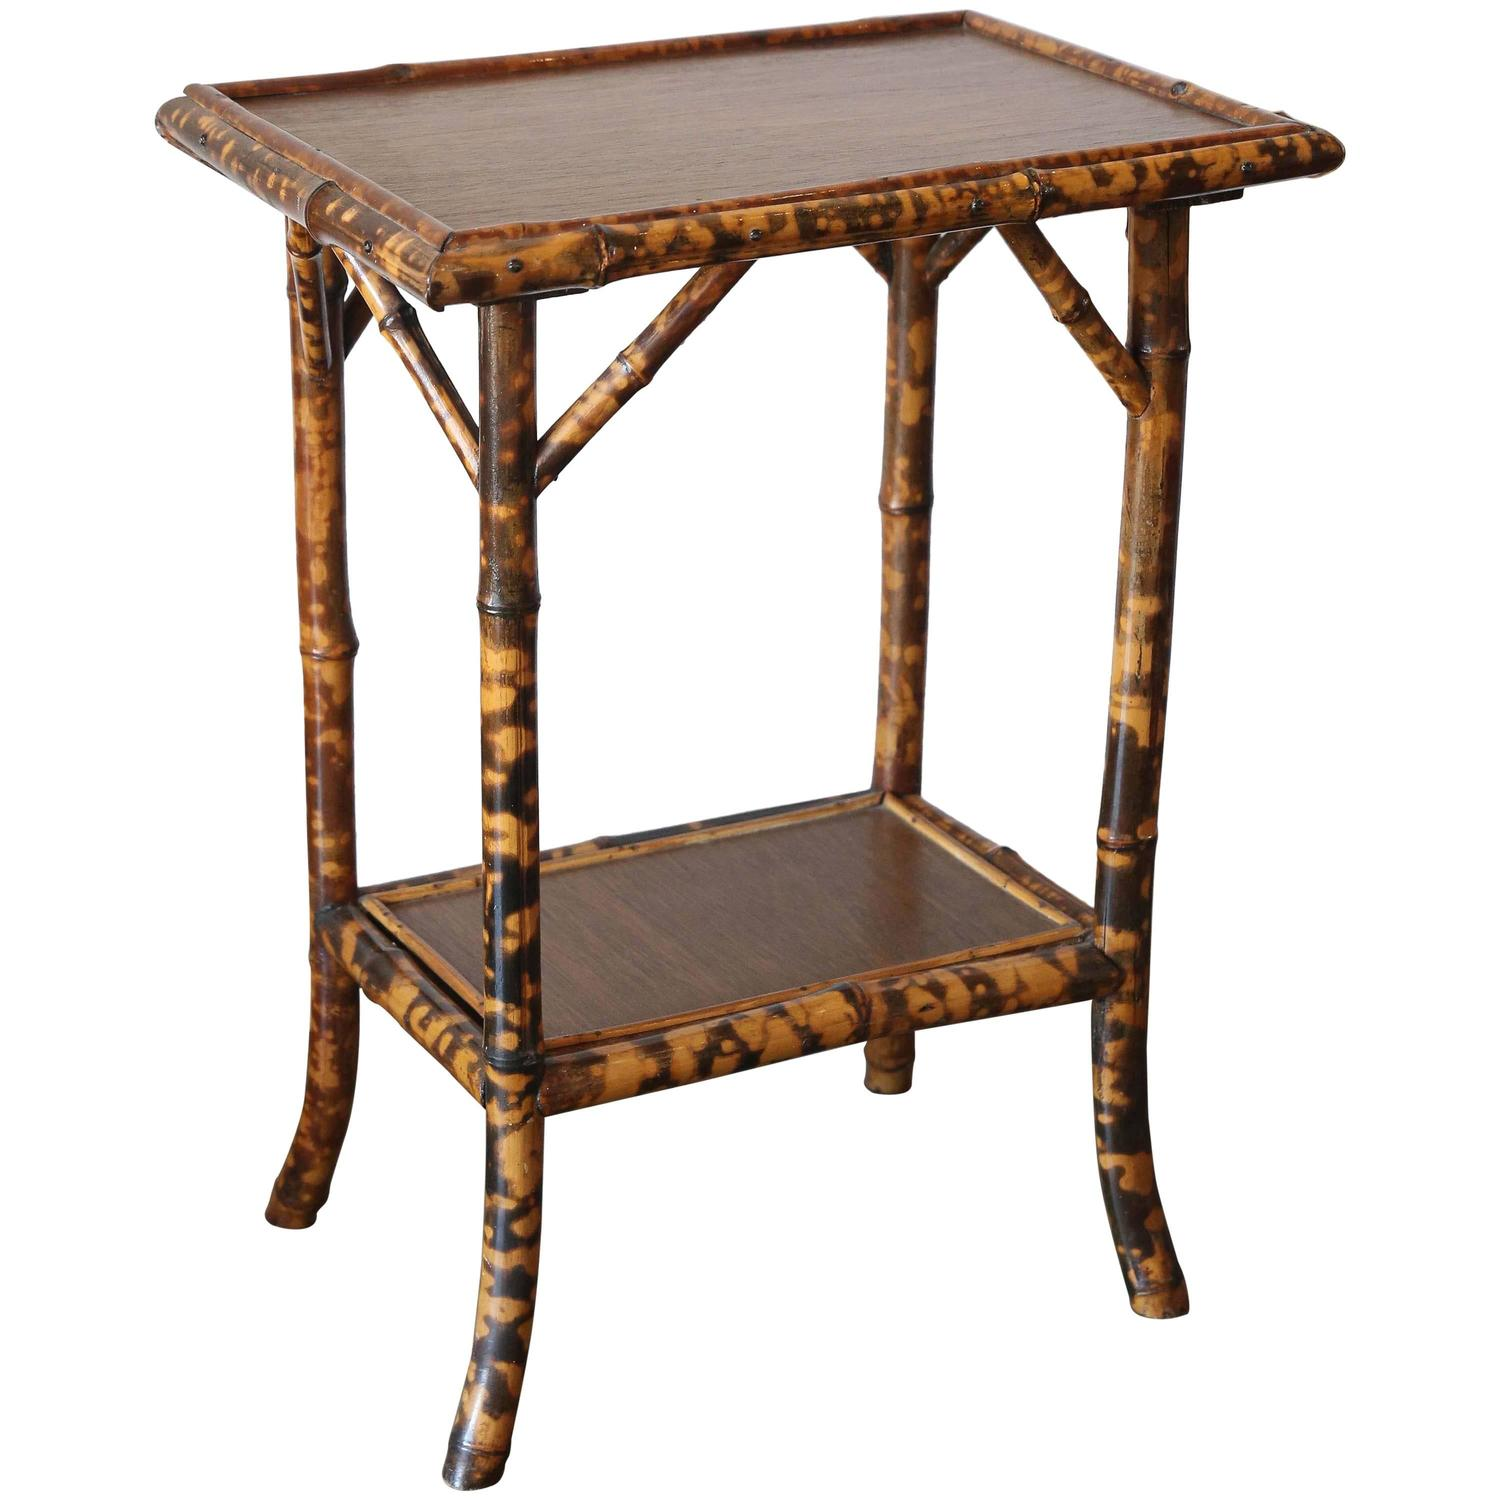 Bamboo Tortoise Coffee Table: 19th Century Scorched Bamboo Tortoise Shell Colored Table